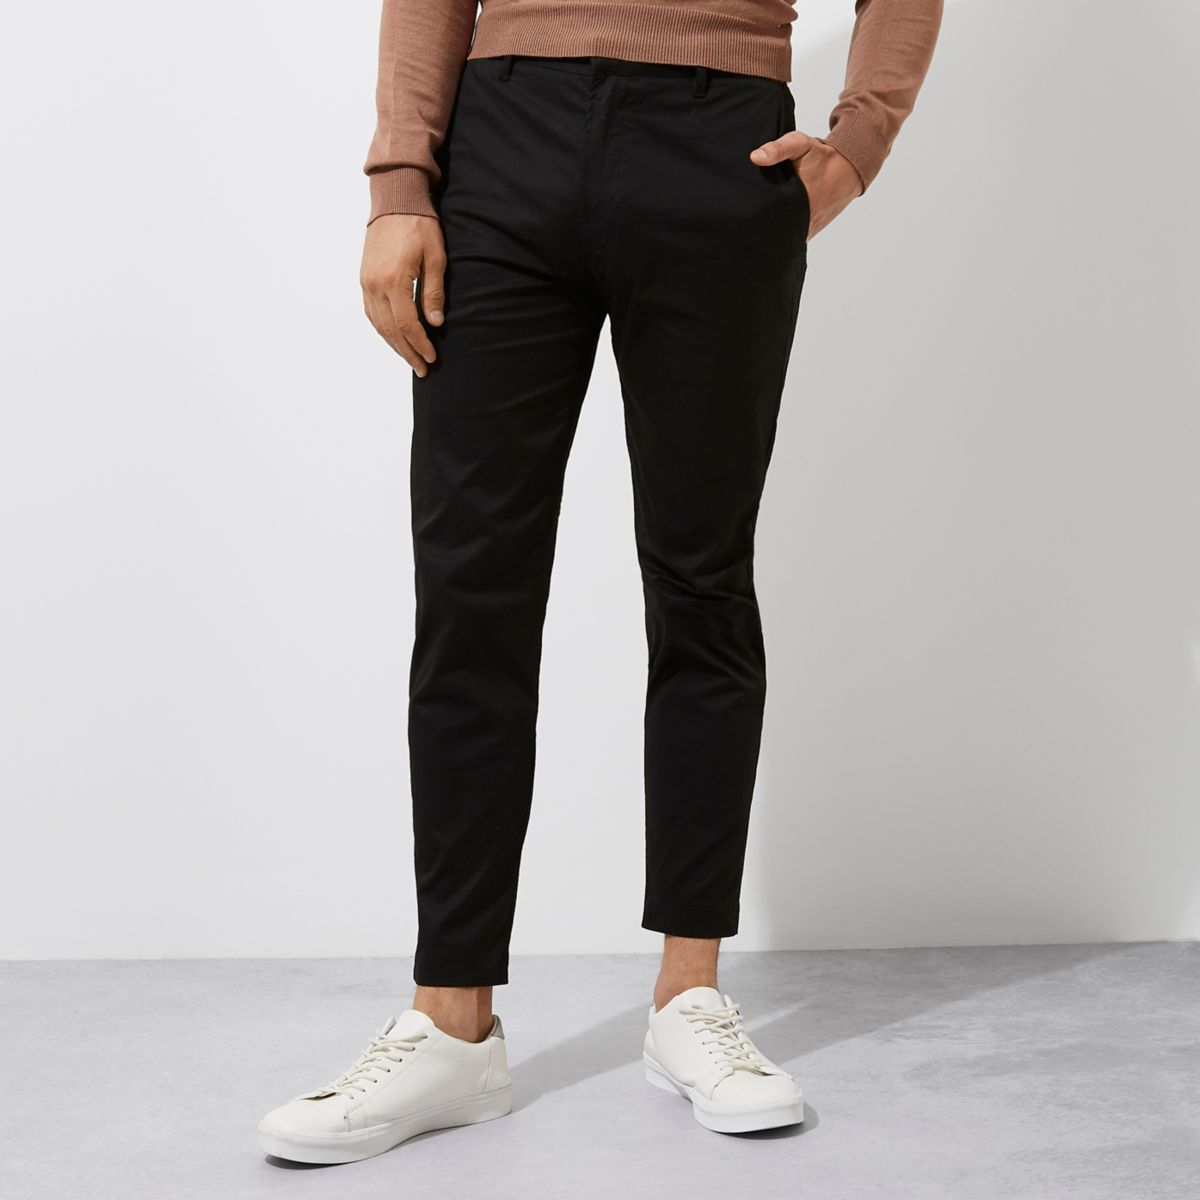 Black slim fit ankle grazer chino trousers